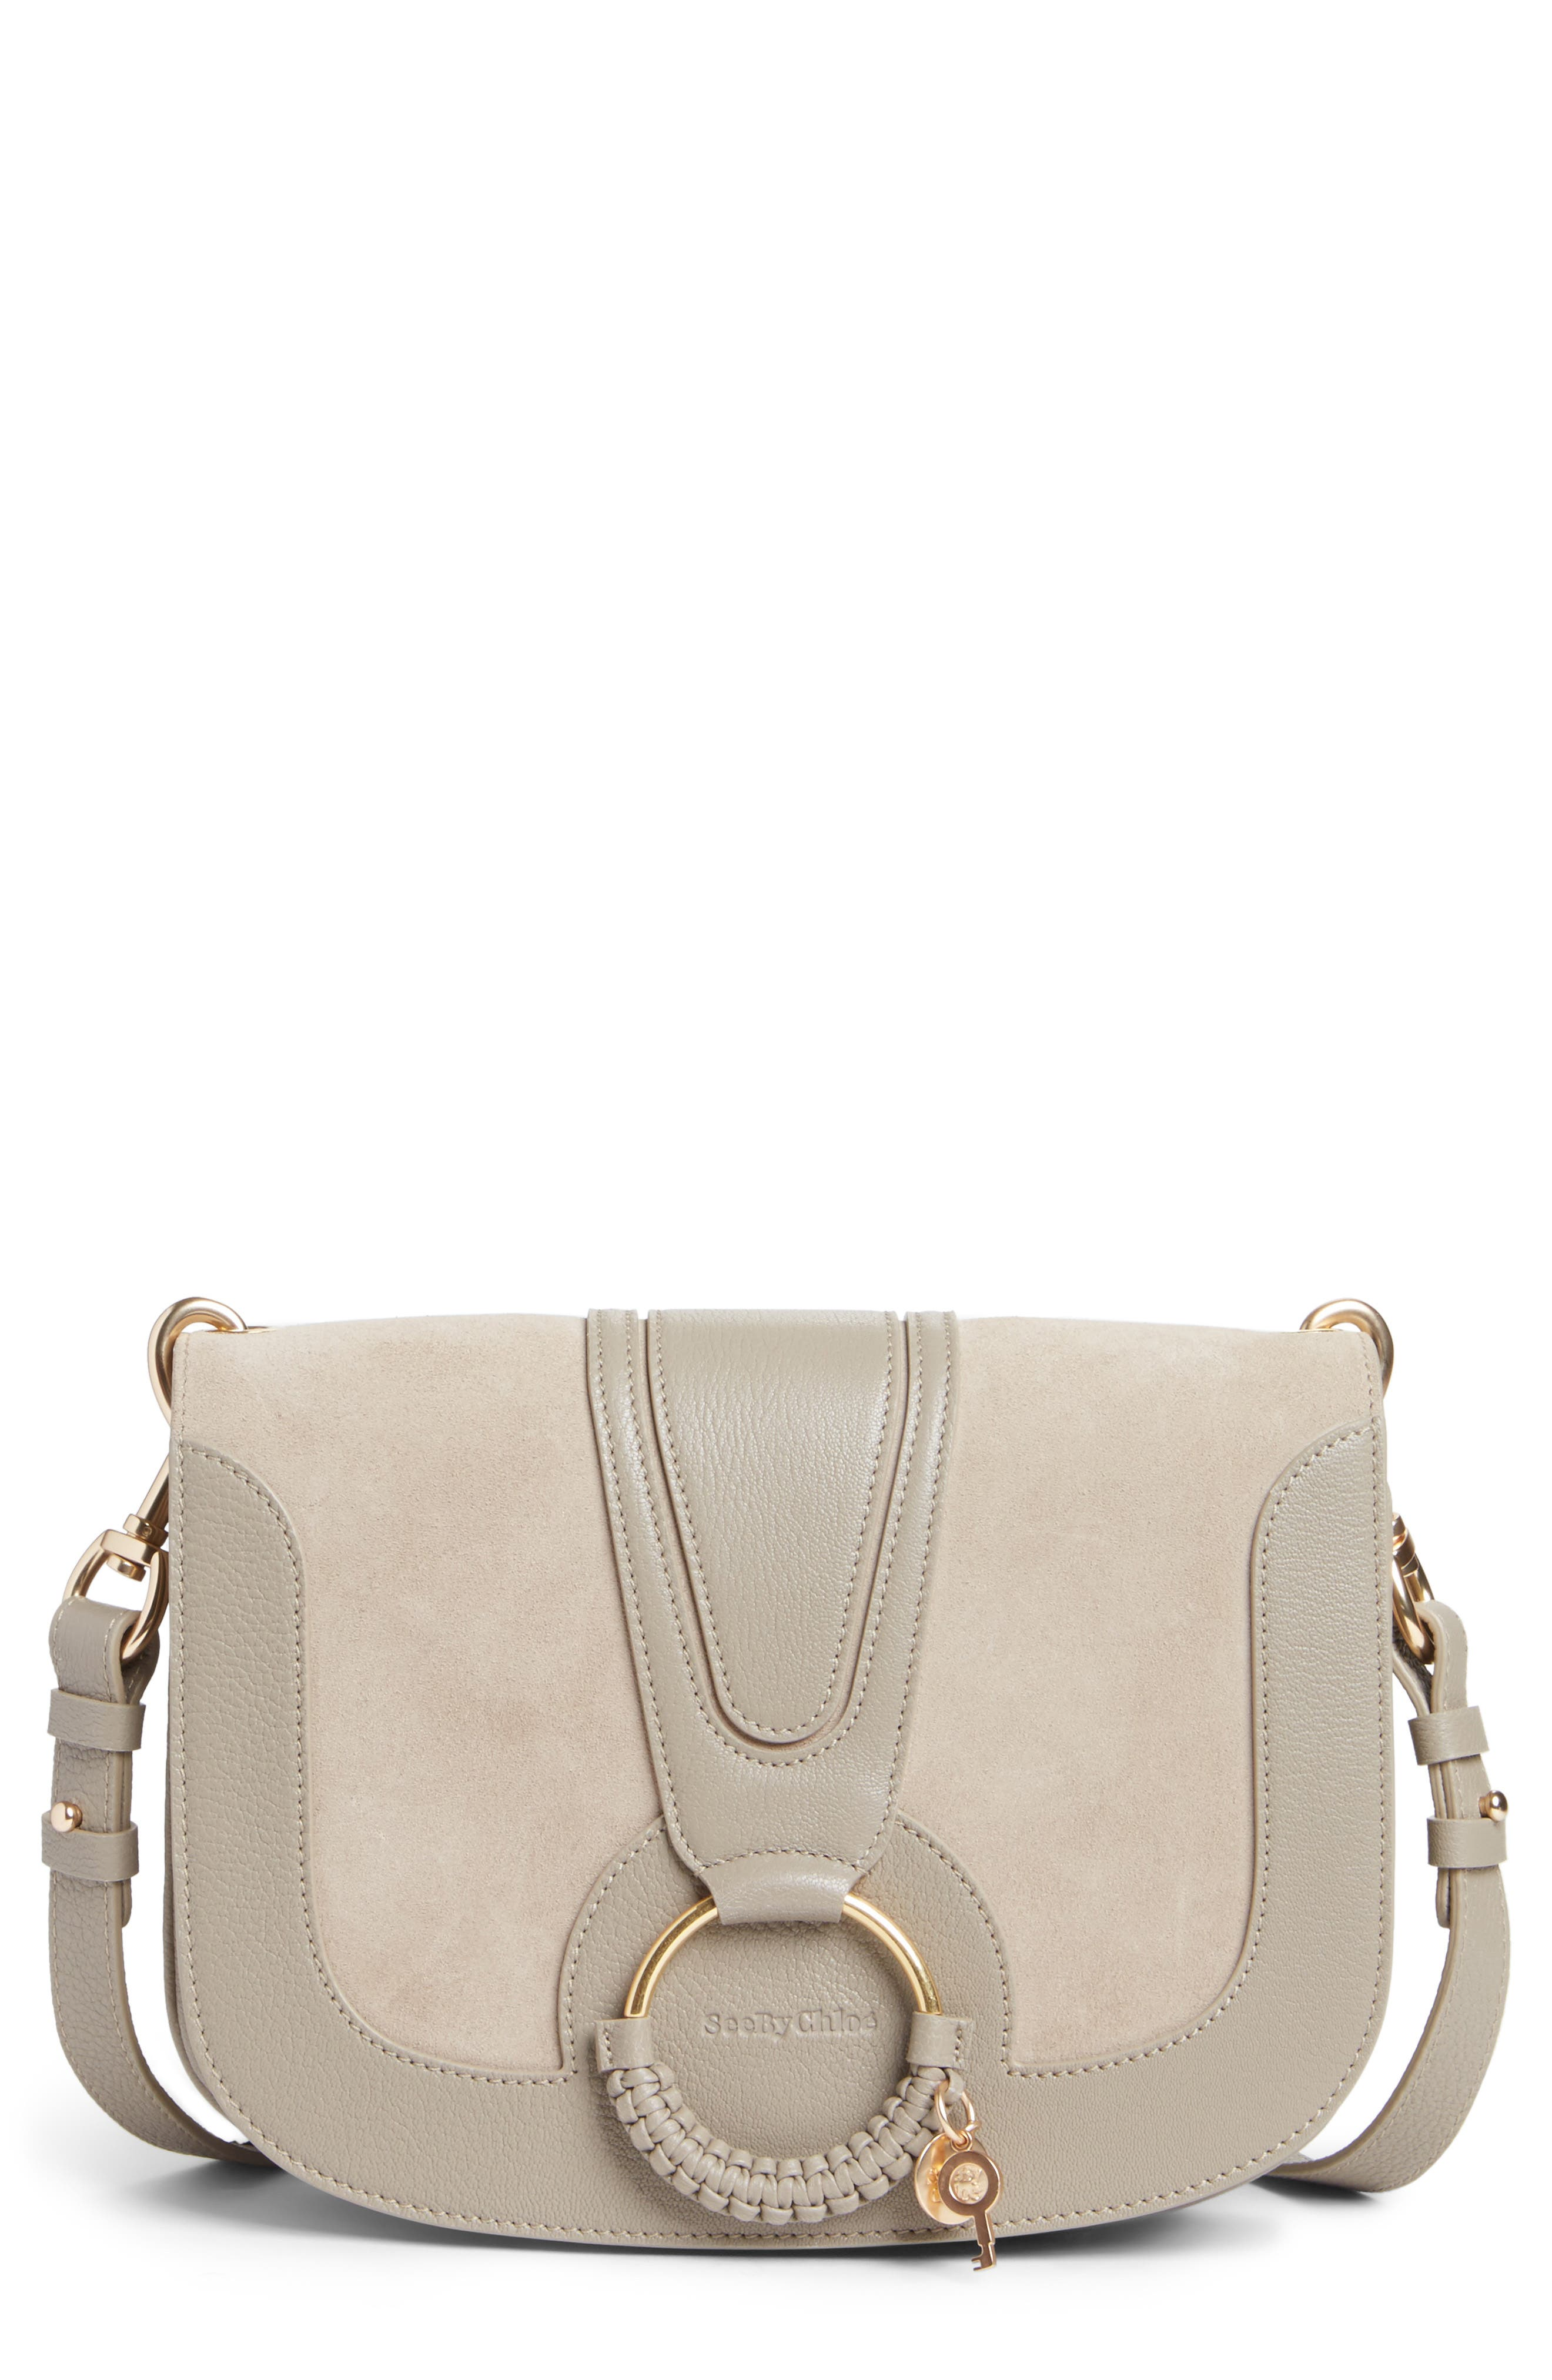 Alternate Image 1 Selected - See by Chloé Medium Hana Leather Satchel